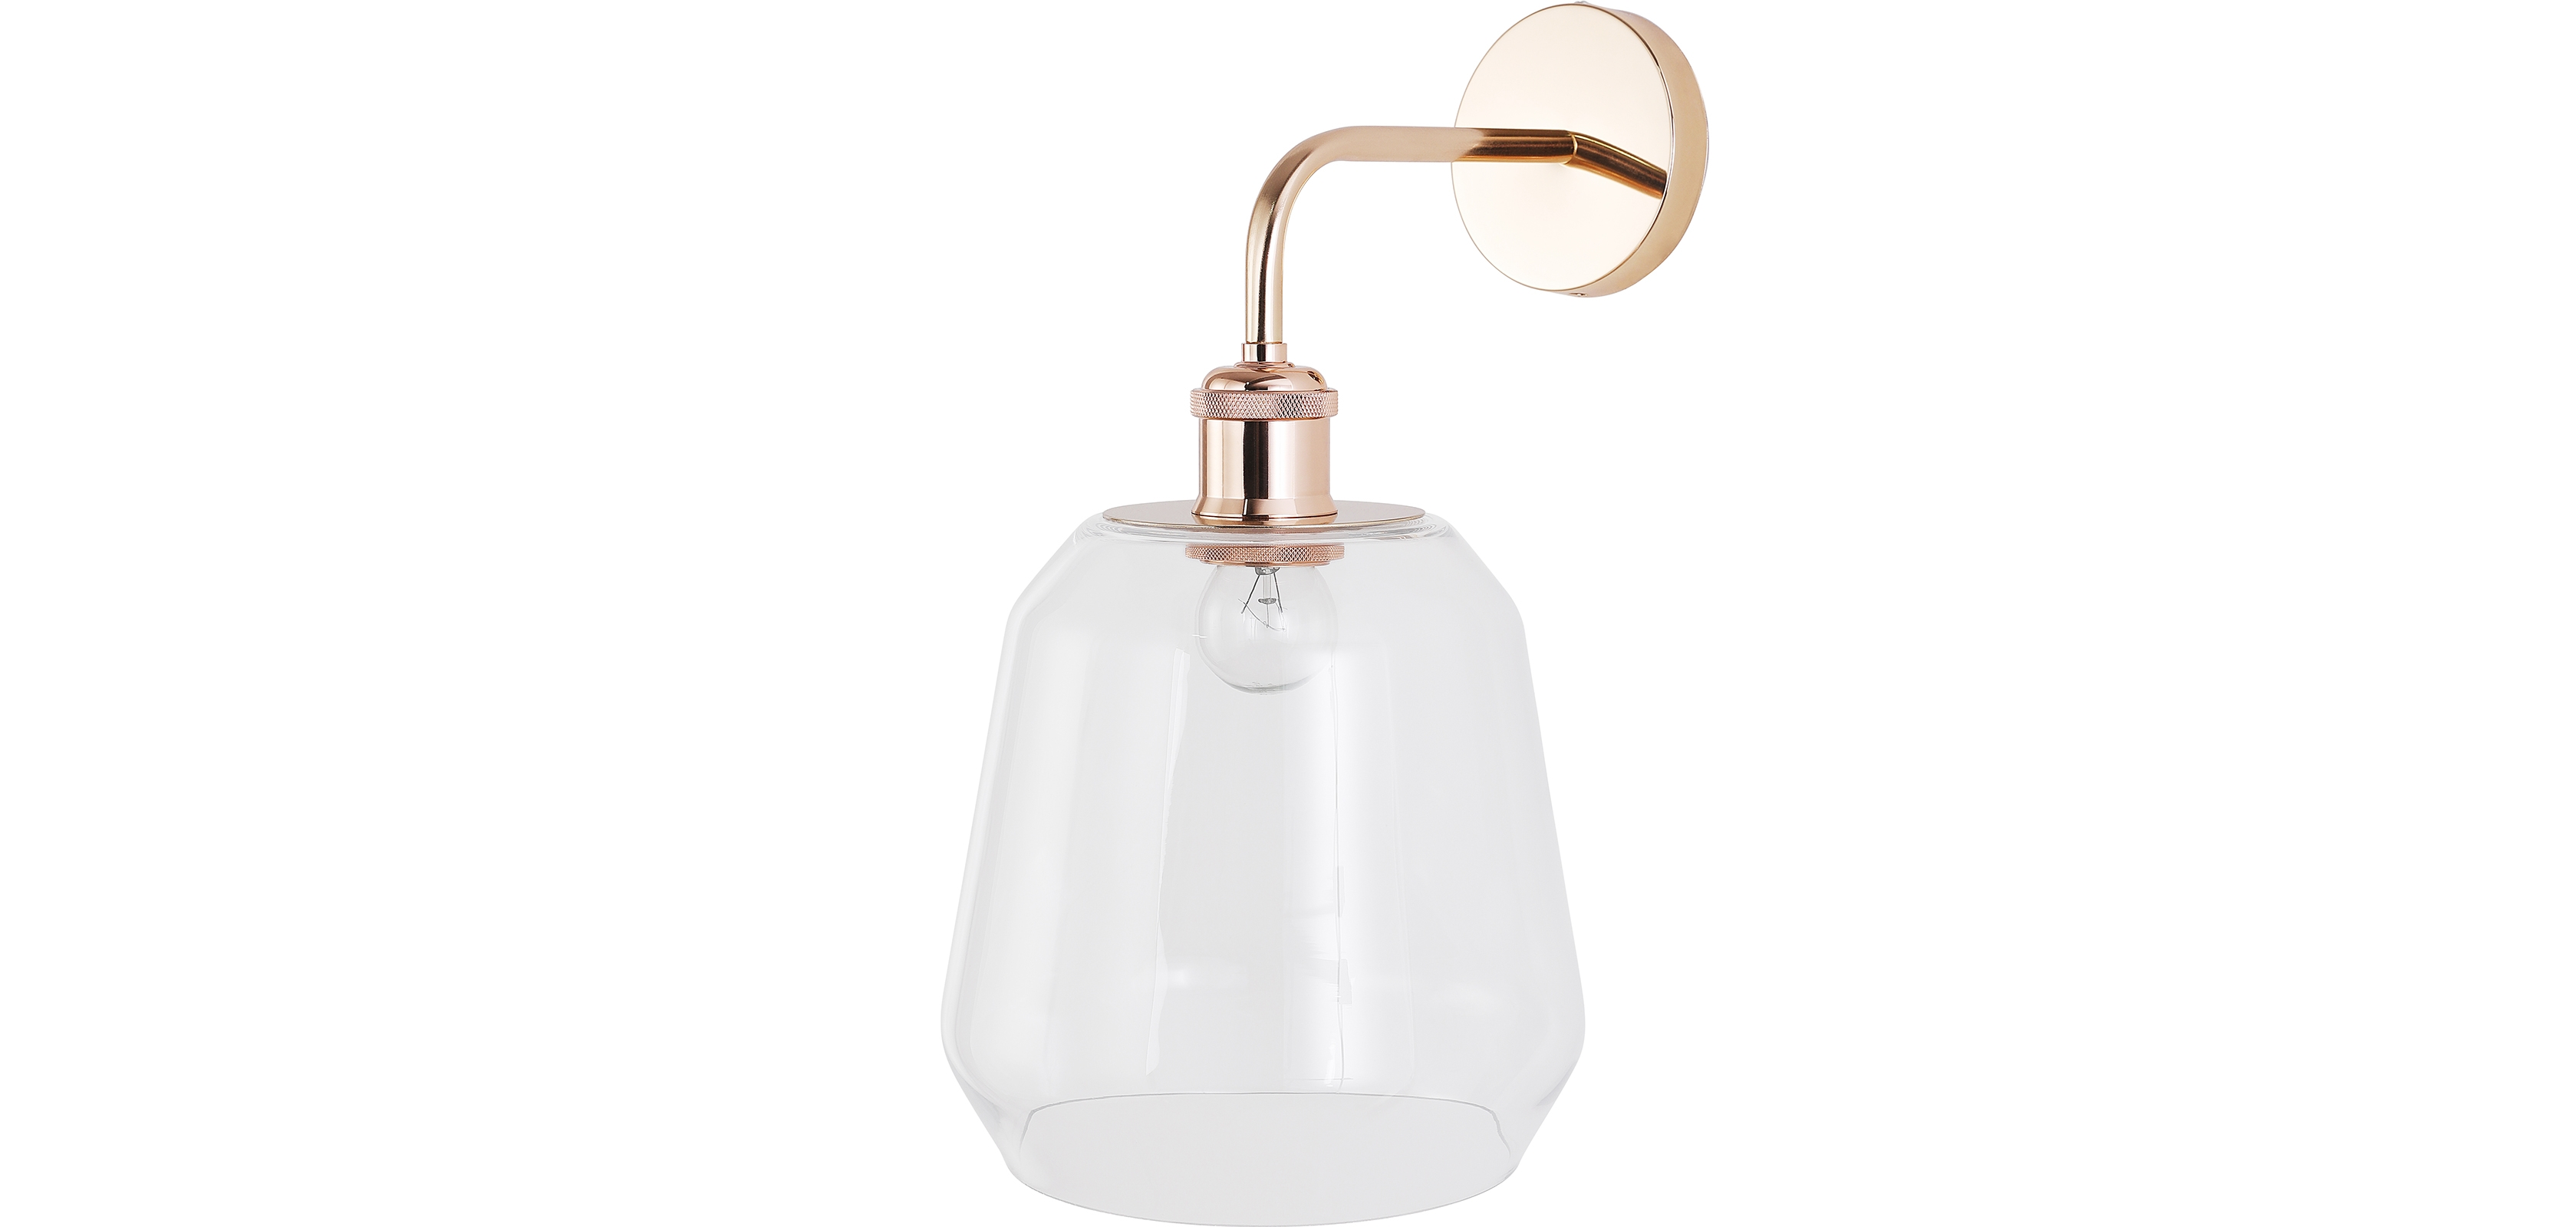 Buy Alessia wall lamp - Crystal and metal Transparent 59343 - in the UK